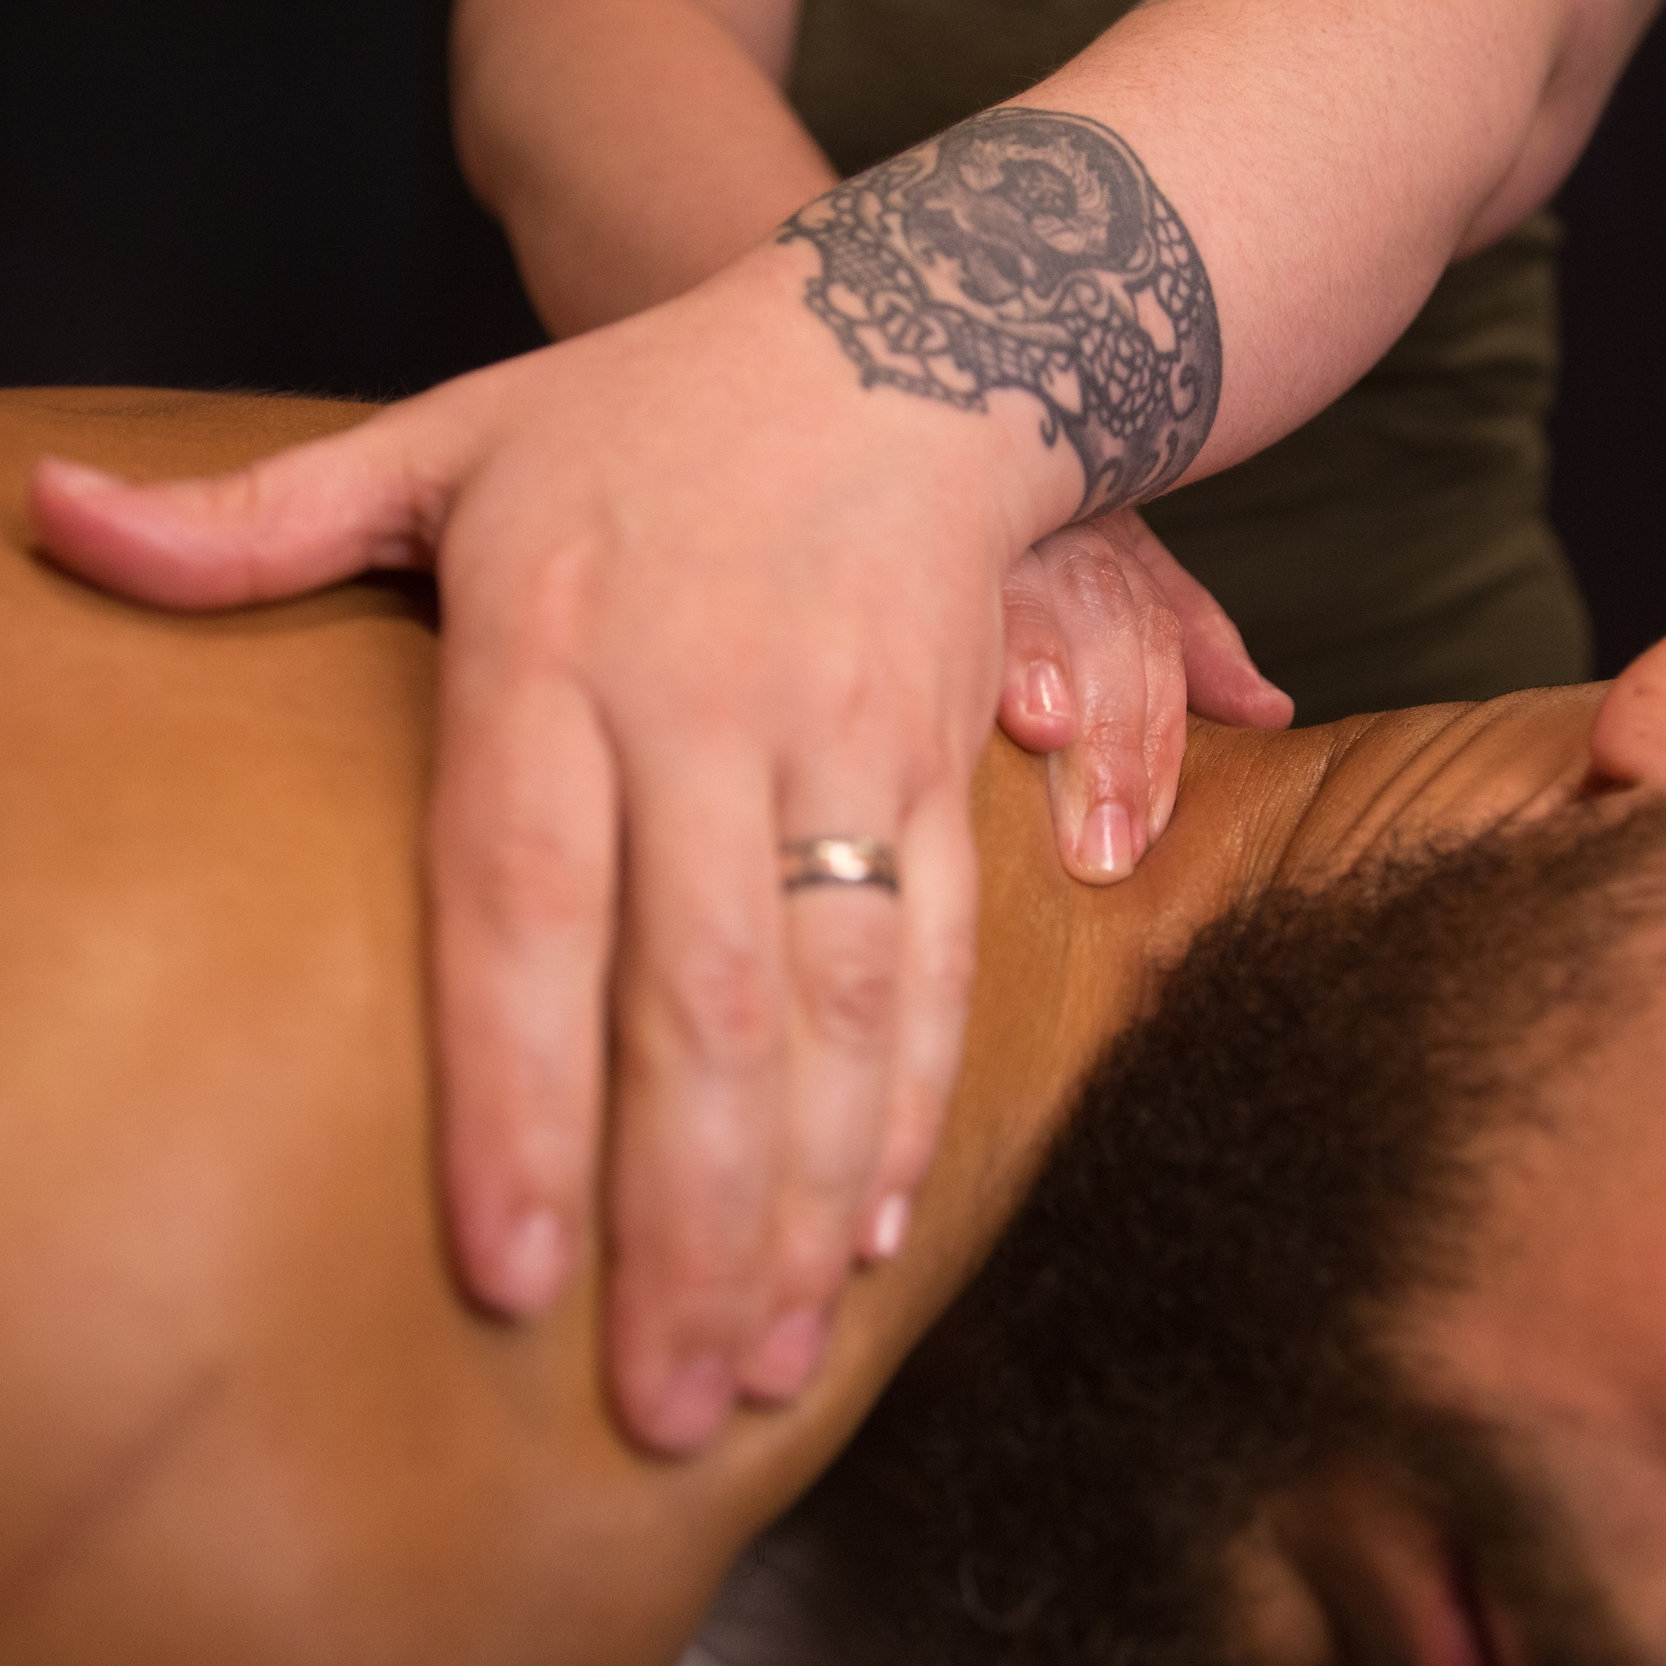 MULTI-SESSION PACKAGES   Choose from any combination of the following services:  + Swedish Massage  + Deep Tissue Massage  + Prenatal Massage  + Neuromuscular Therapy  + Open Sky Custom Signature Facial or  + HIS Facial   3-hour package: $215  4-hour package: $280  5-hour package: $340  6-hour package: $400   Cannot be split into half hour increments.